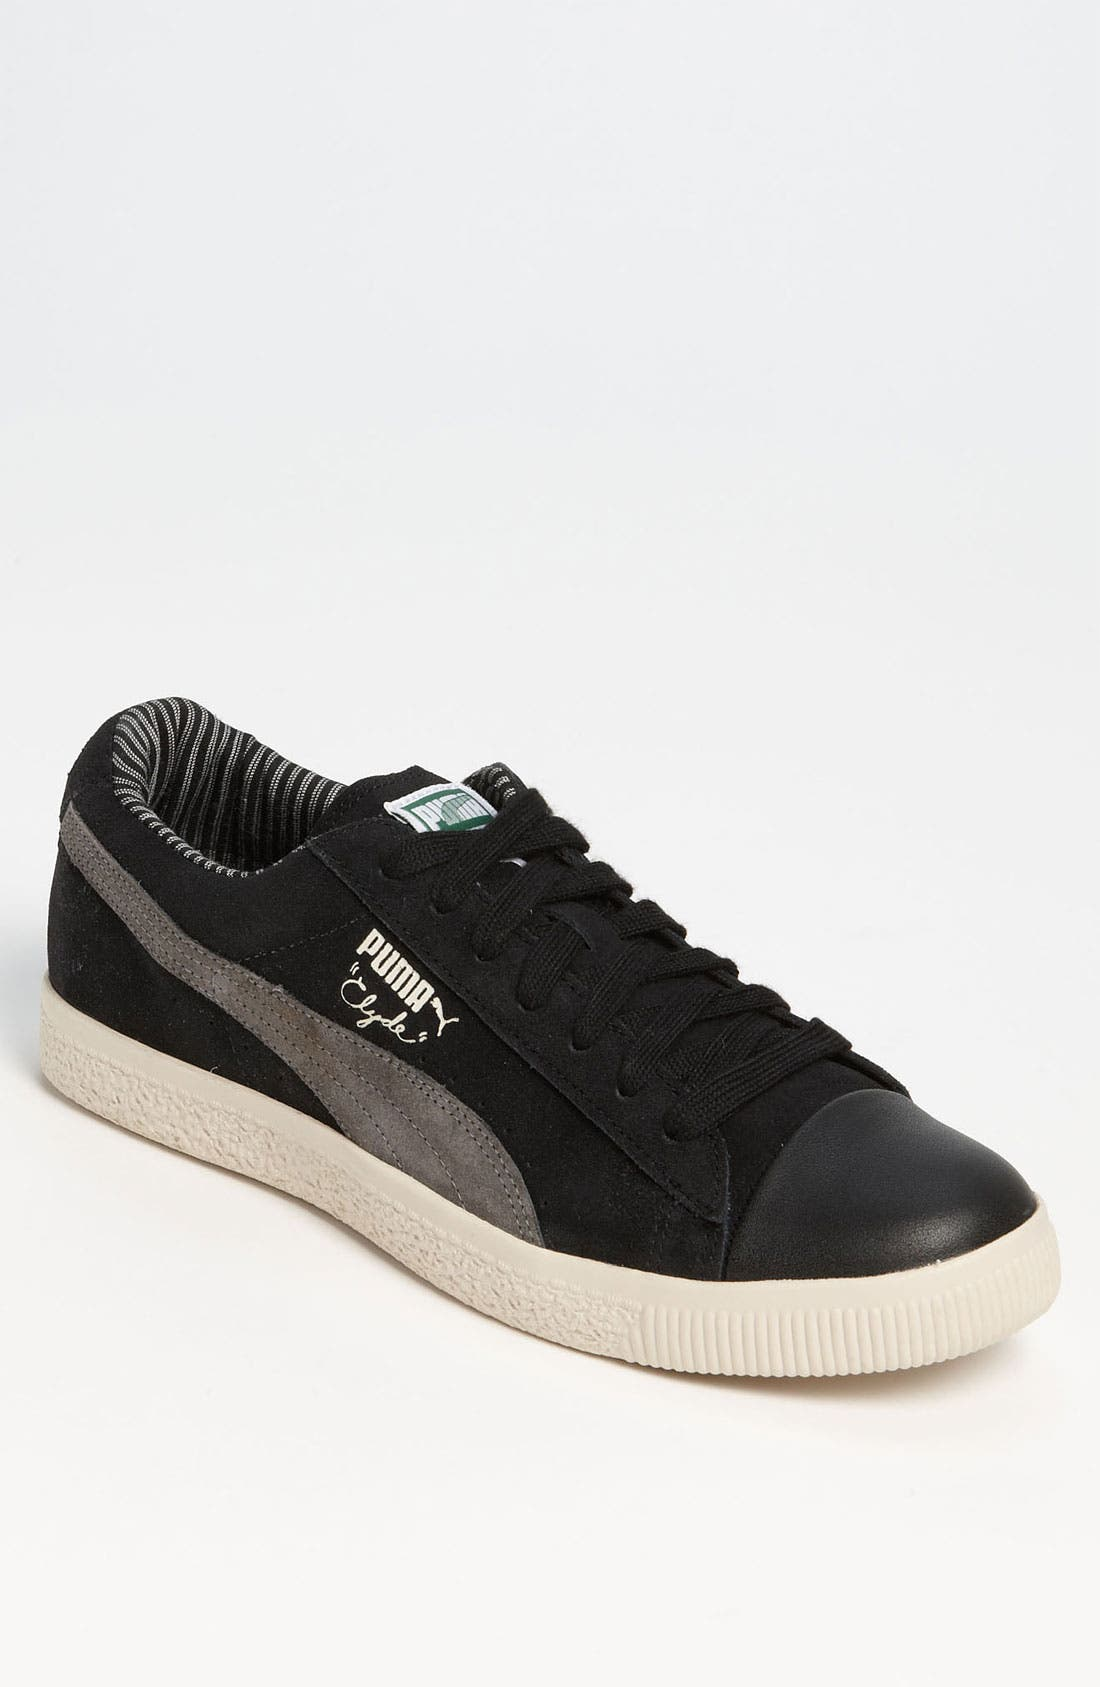 Alternate Image 1 Selected - PUMA 'Clyde TC Lodge' Sneaker (Men) (Online Exclusive)